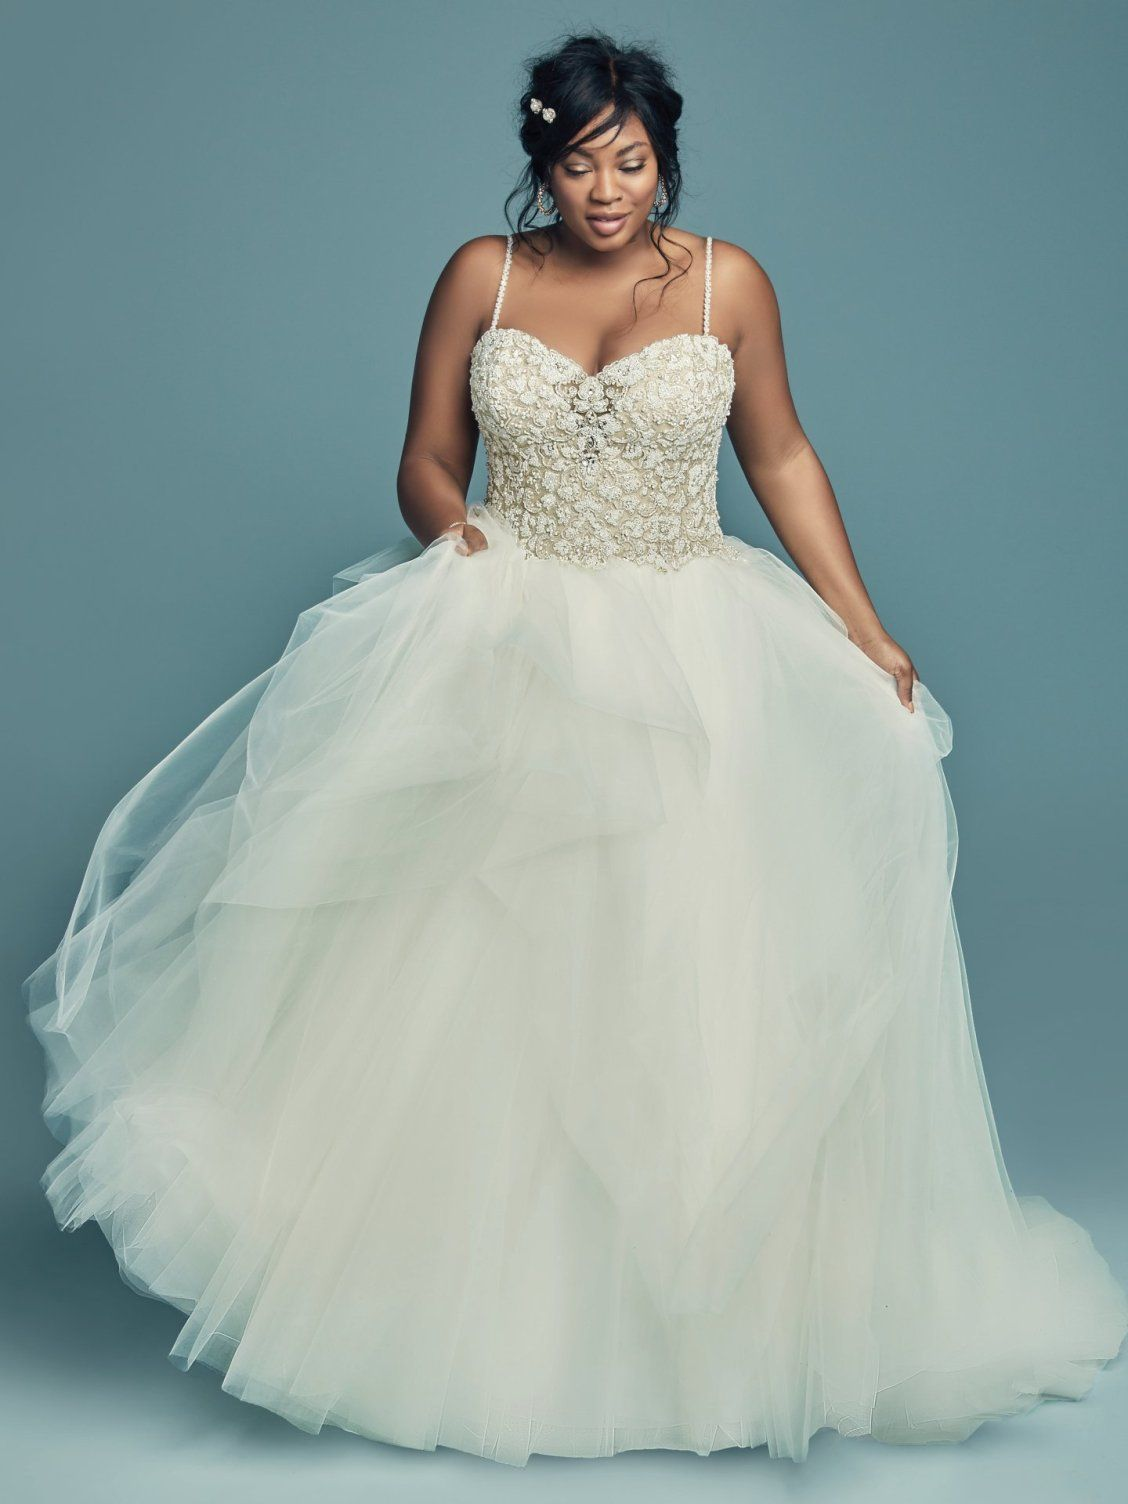 SHAUNA by Maggie Sottero Wedding Dresses in 2020